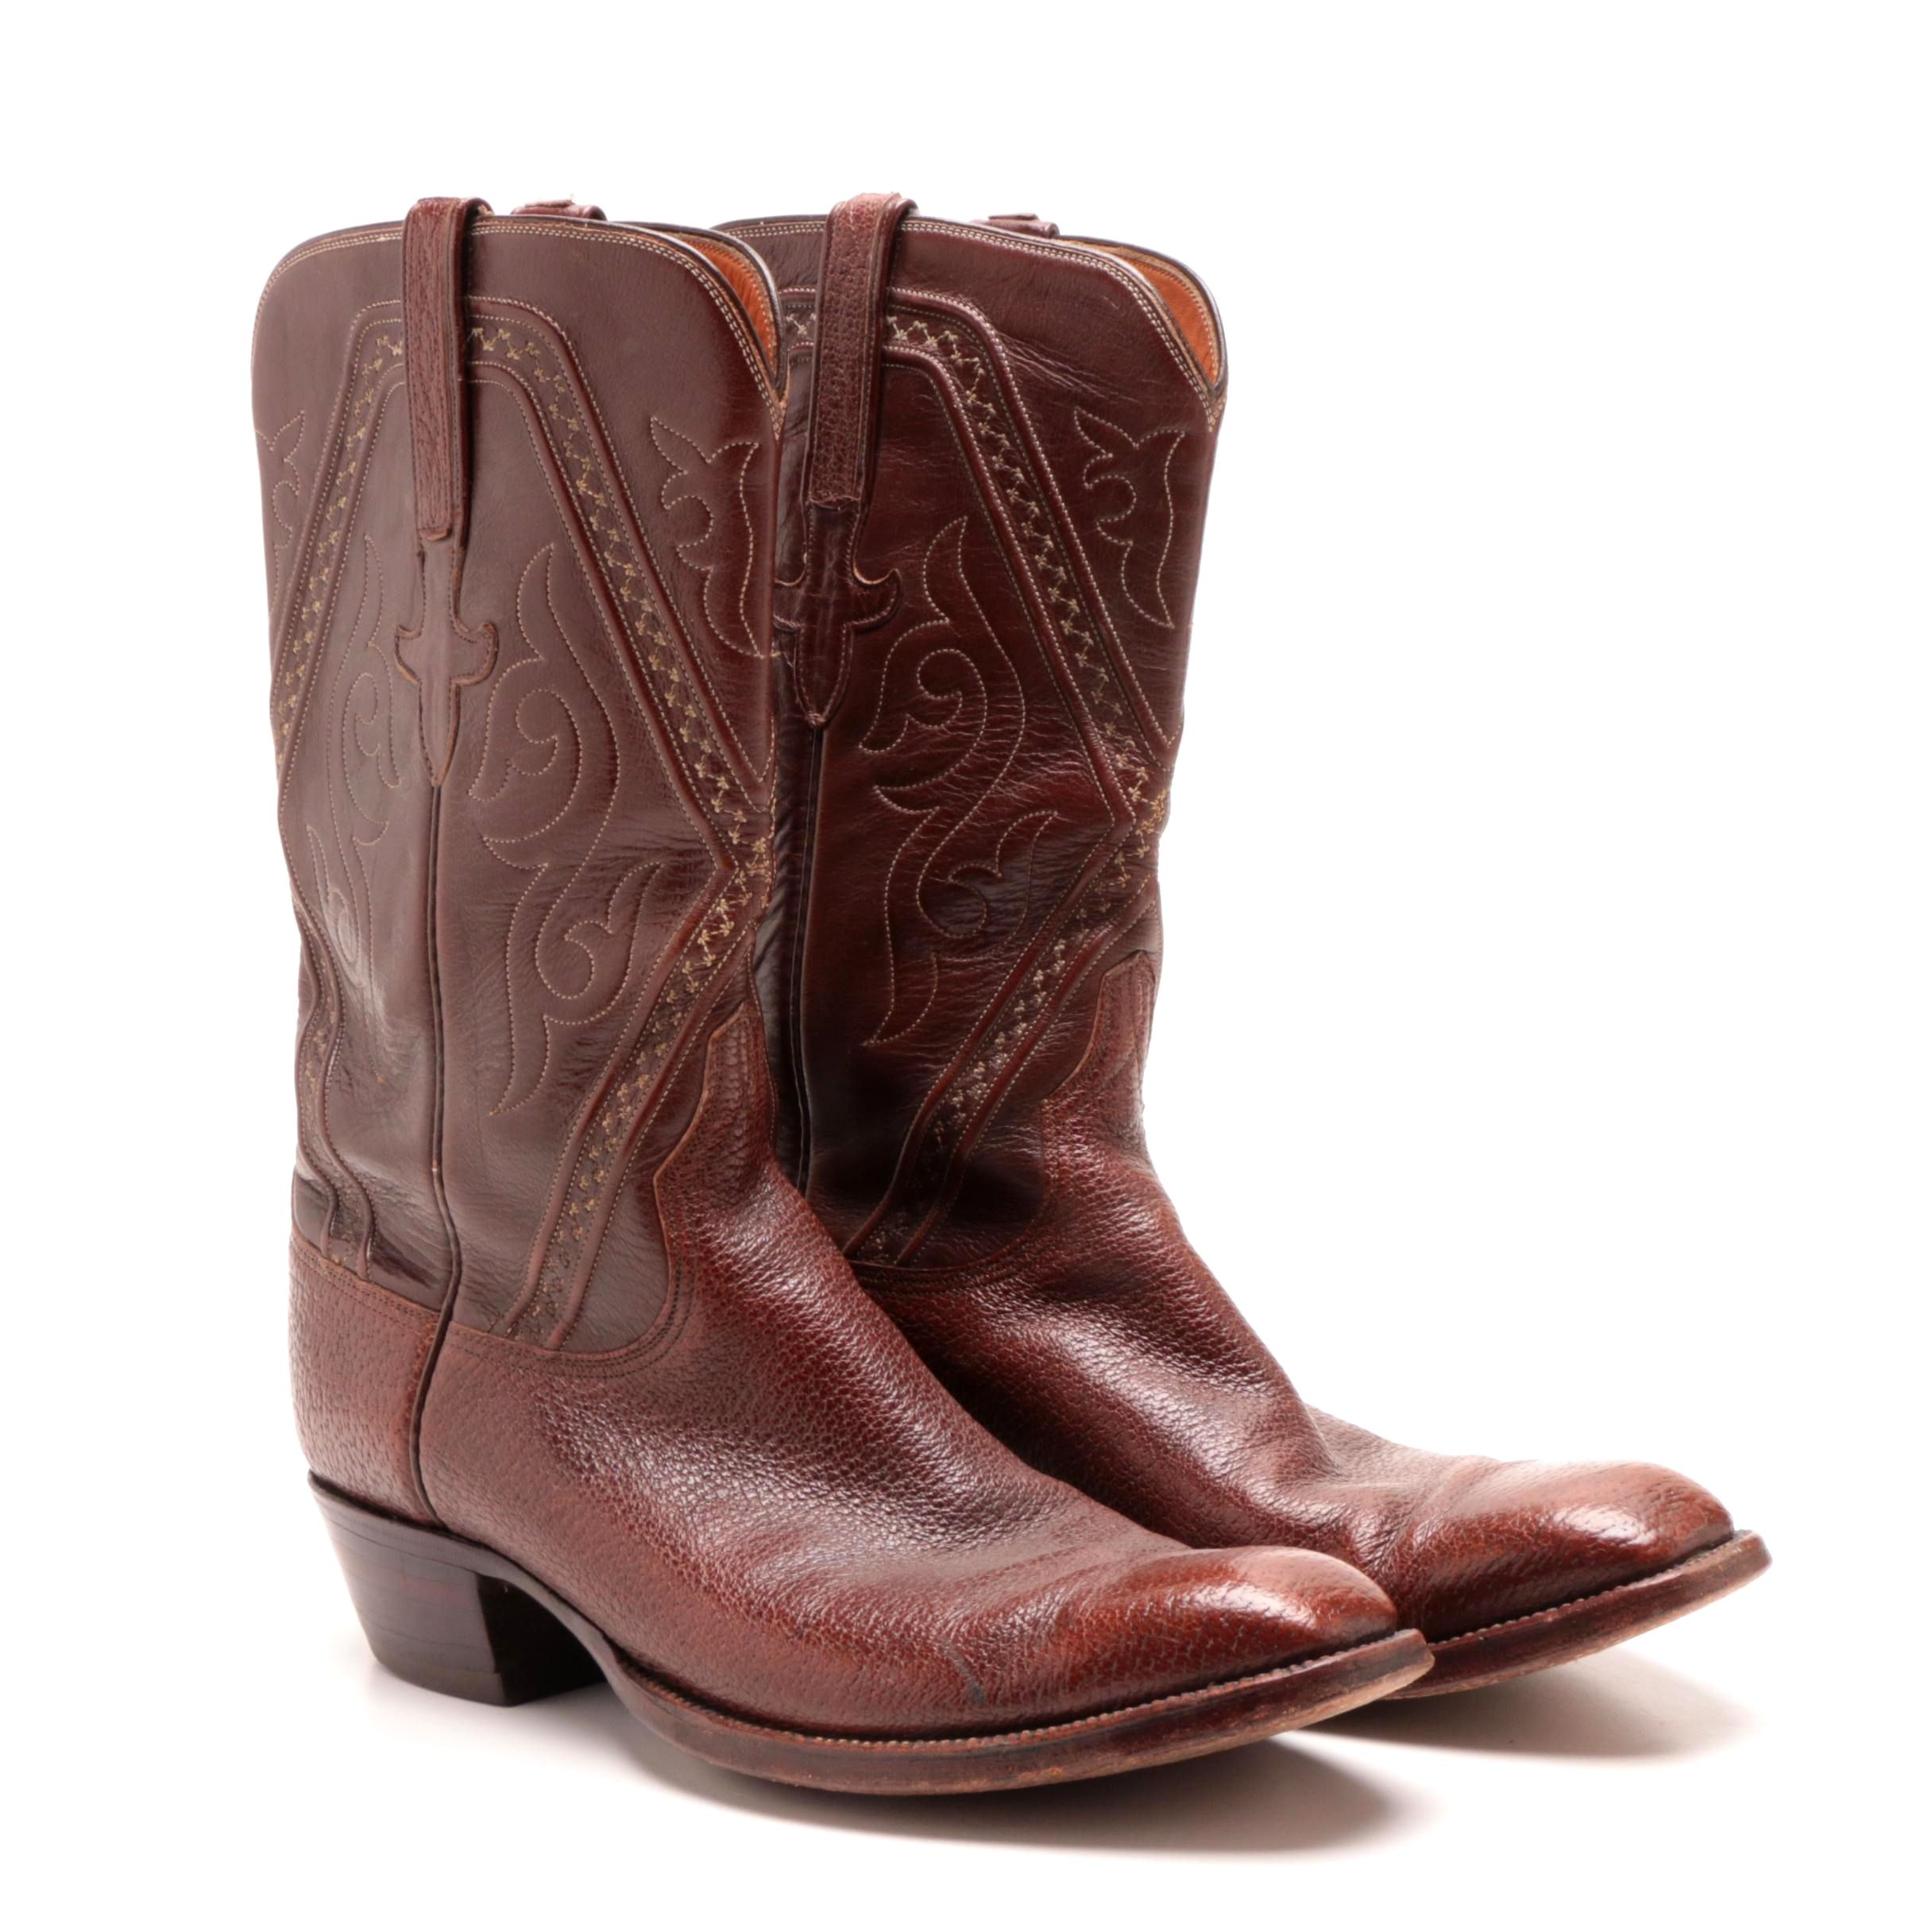 Men's Lucchese Brown Leather Cowboy Boots